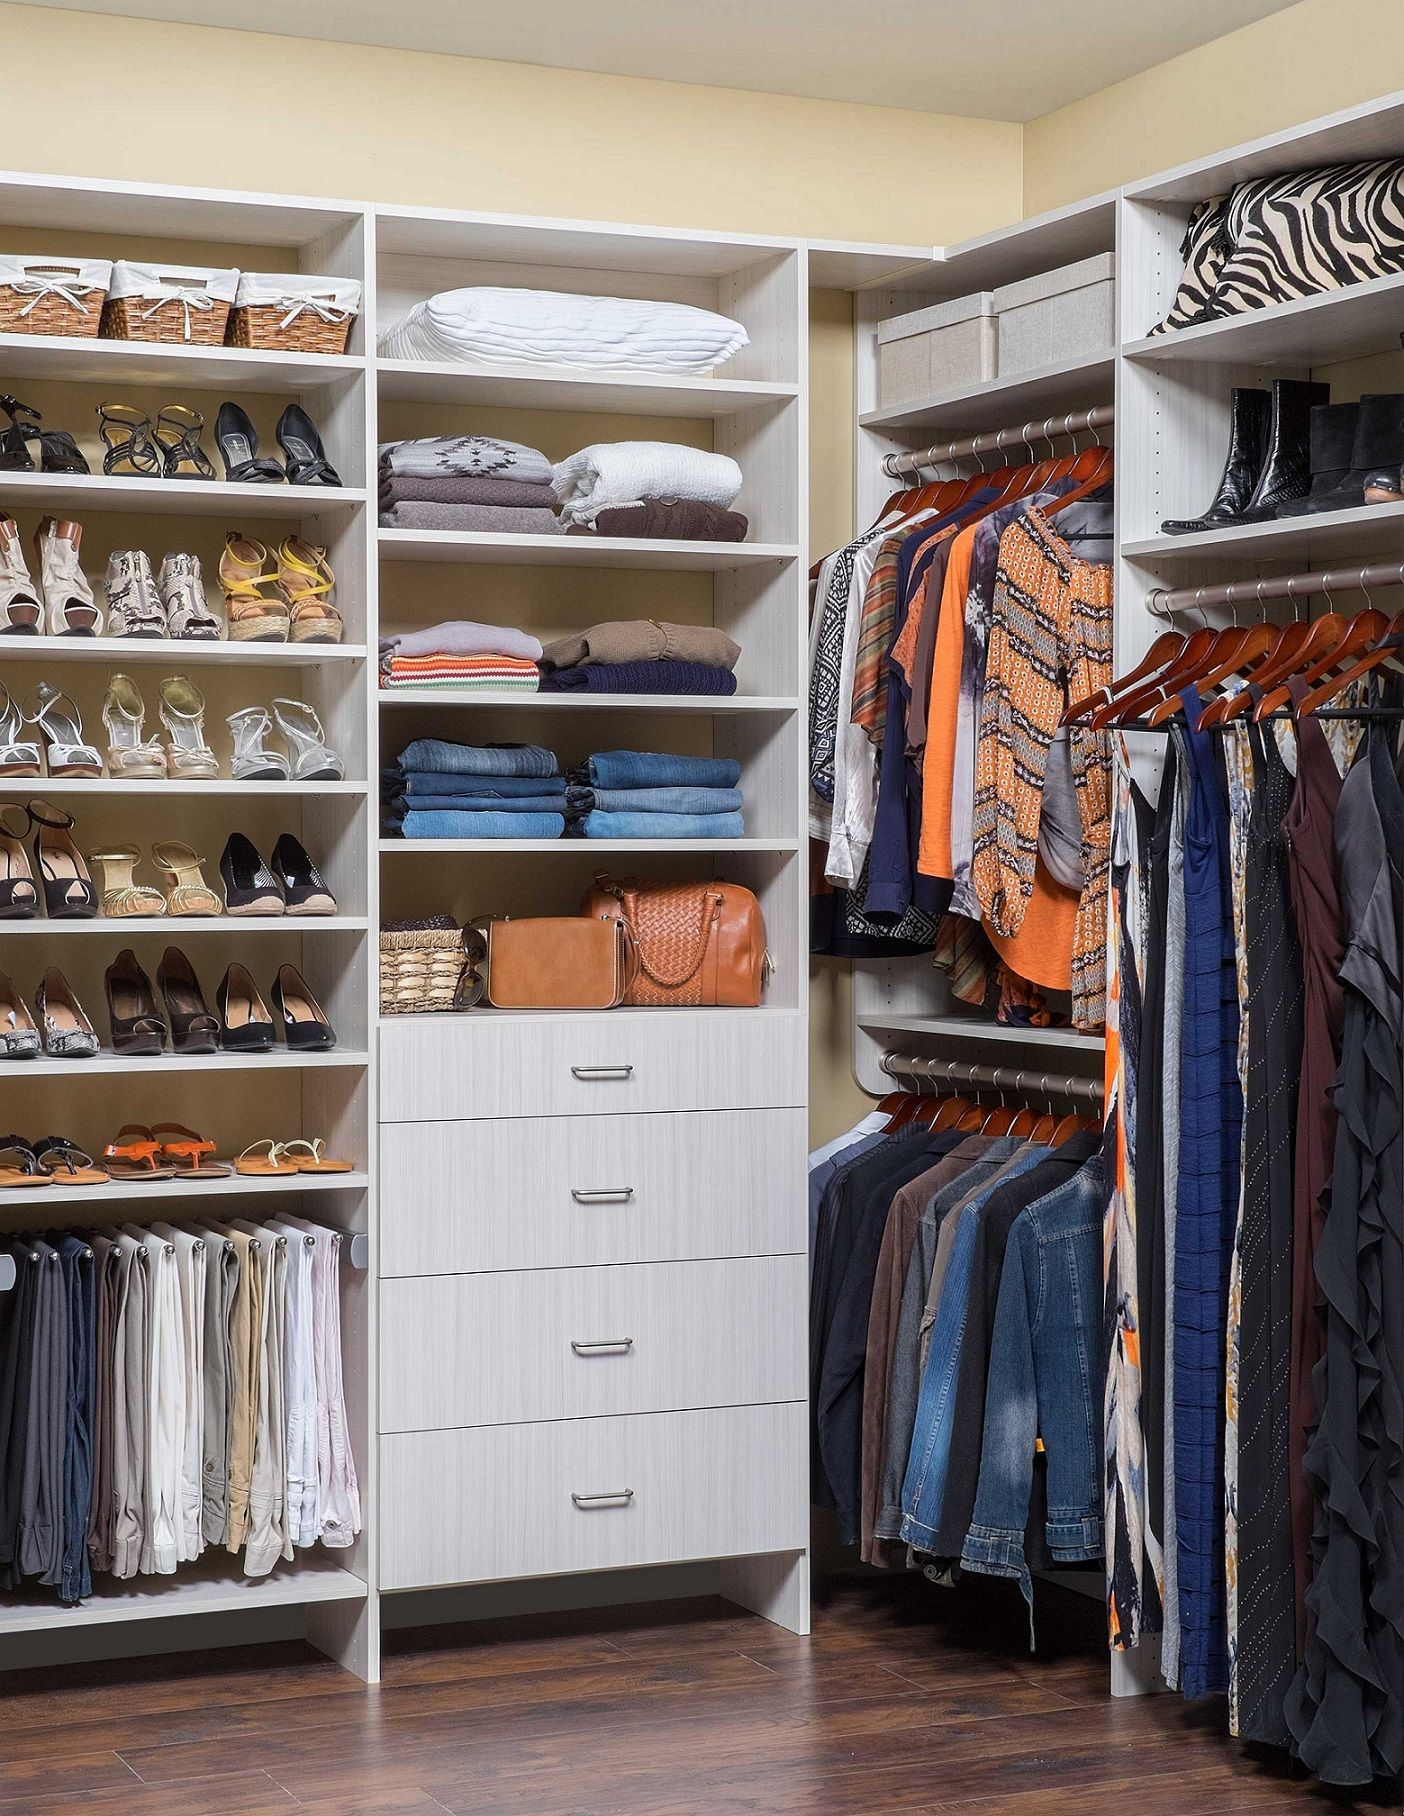 Cute small walk in closet ideas for women closets - Small closet design layout ...